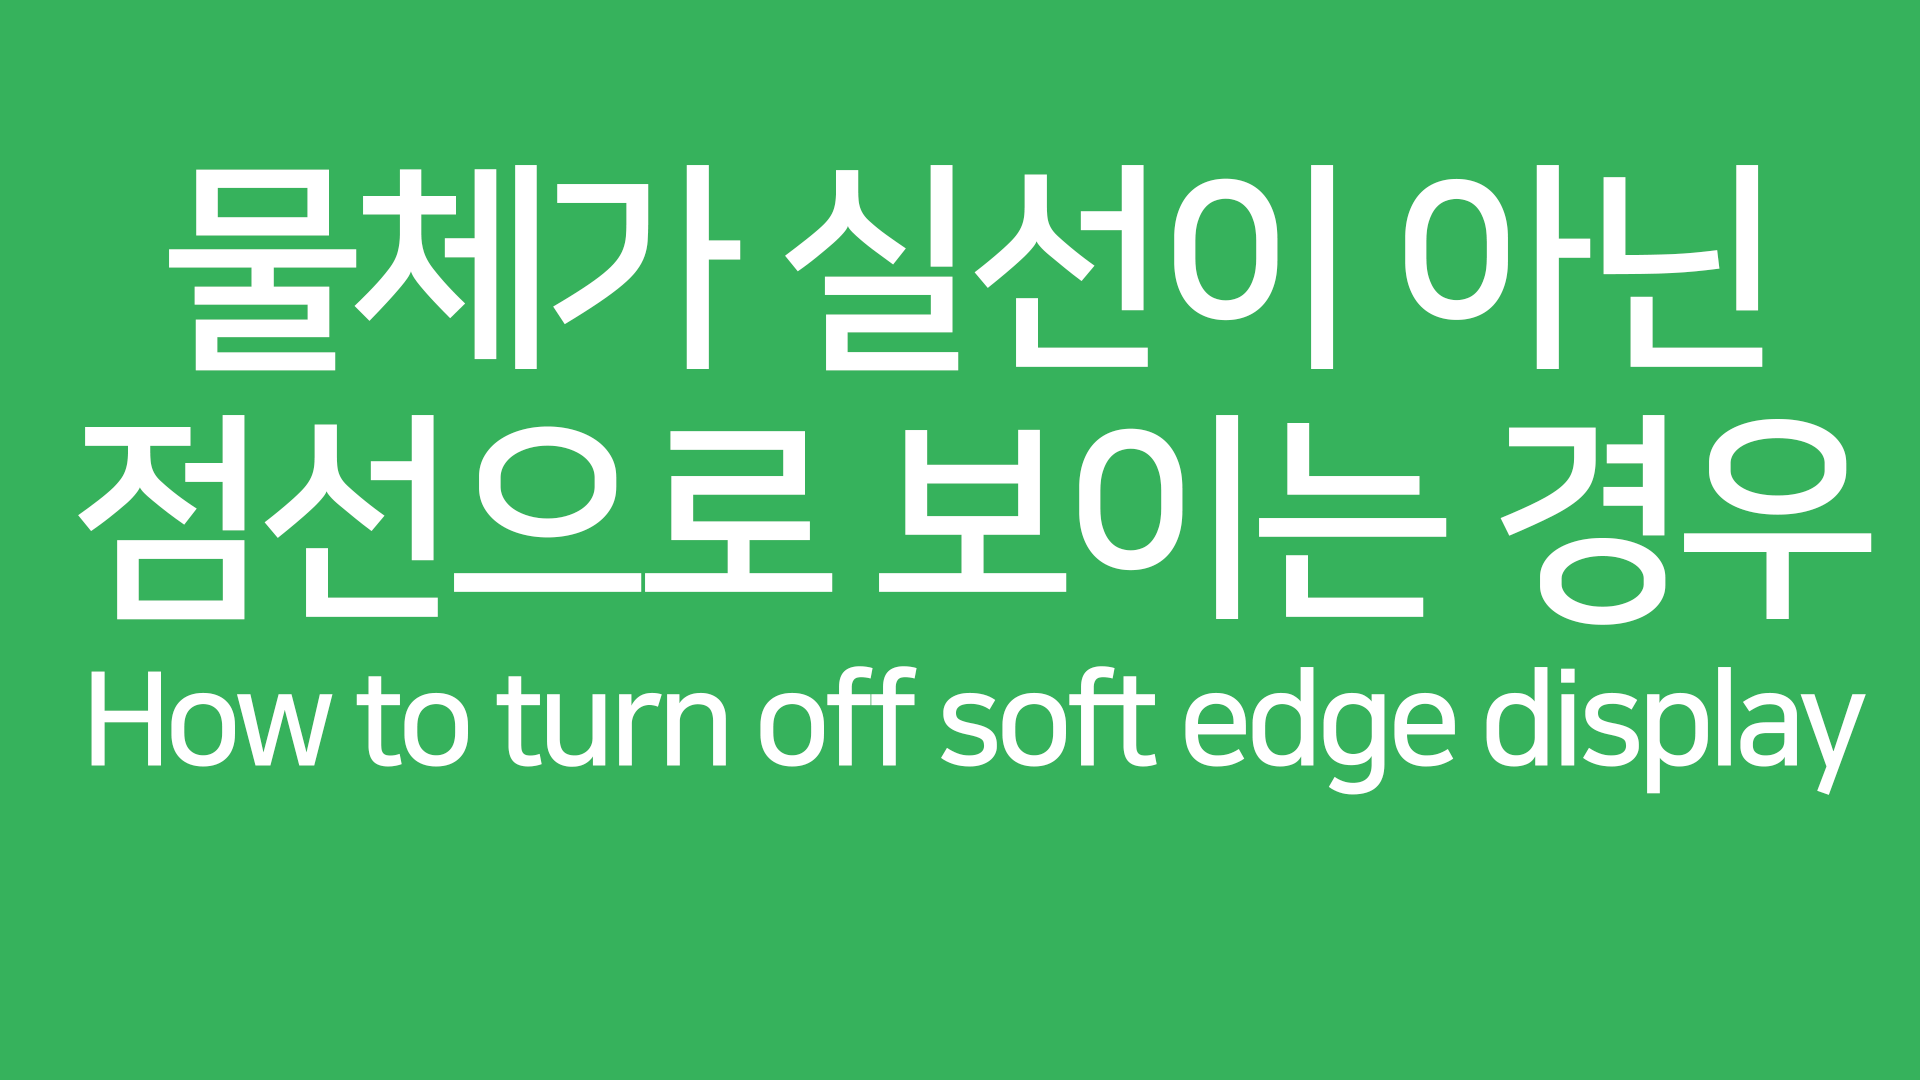 soft_edge_display.png